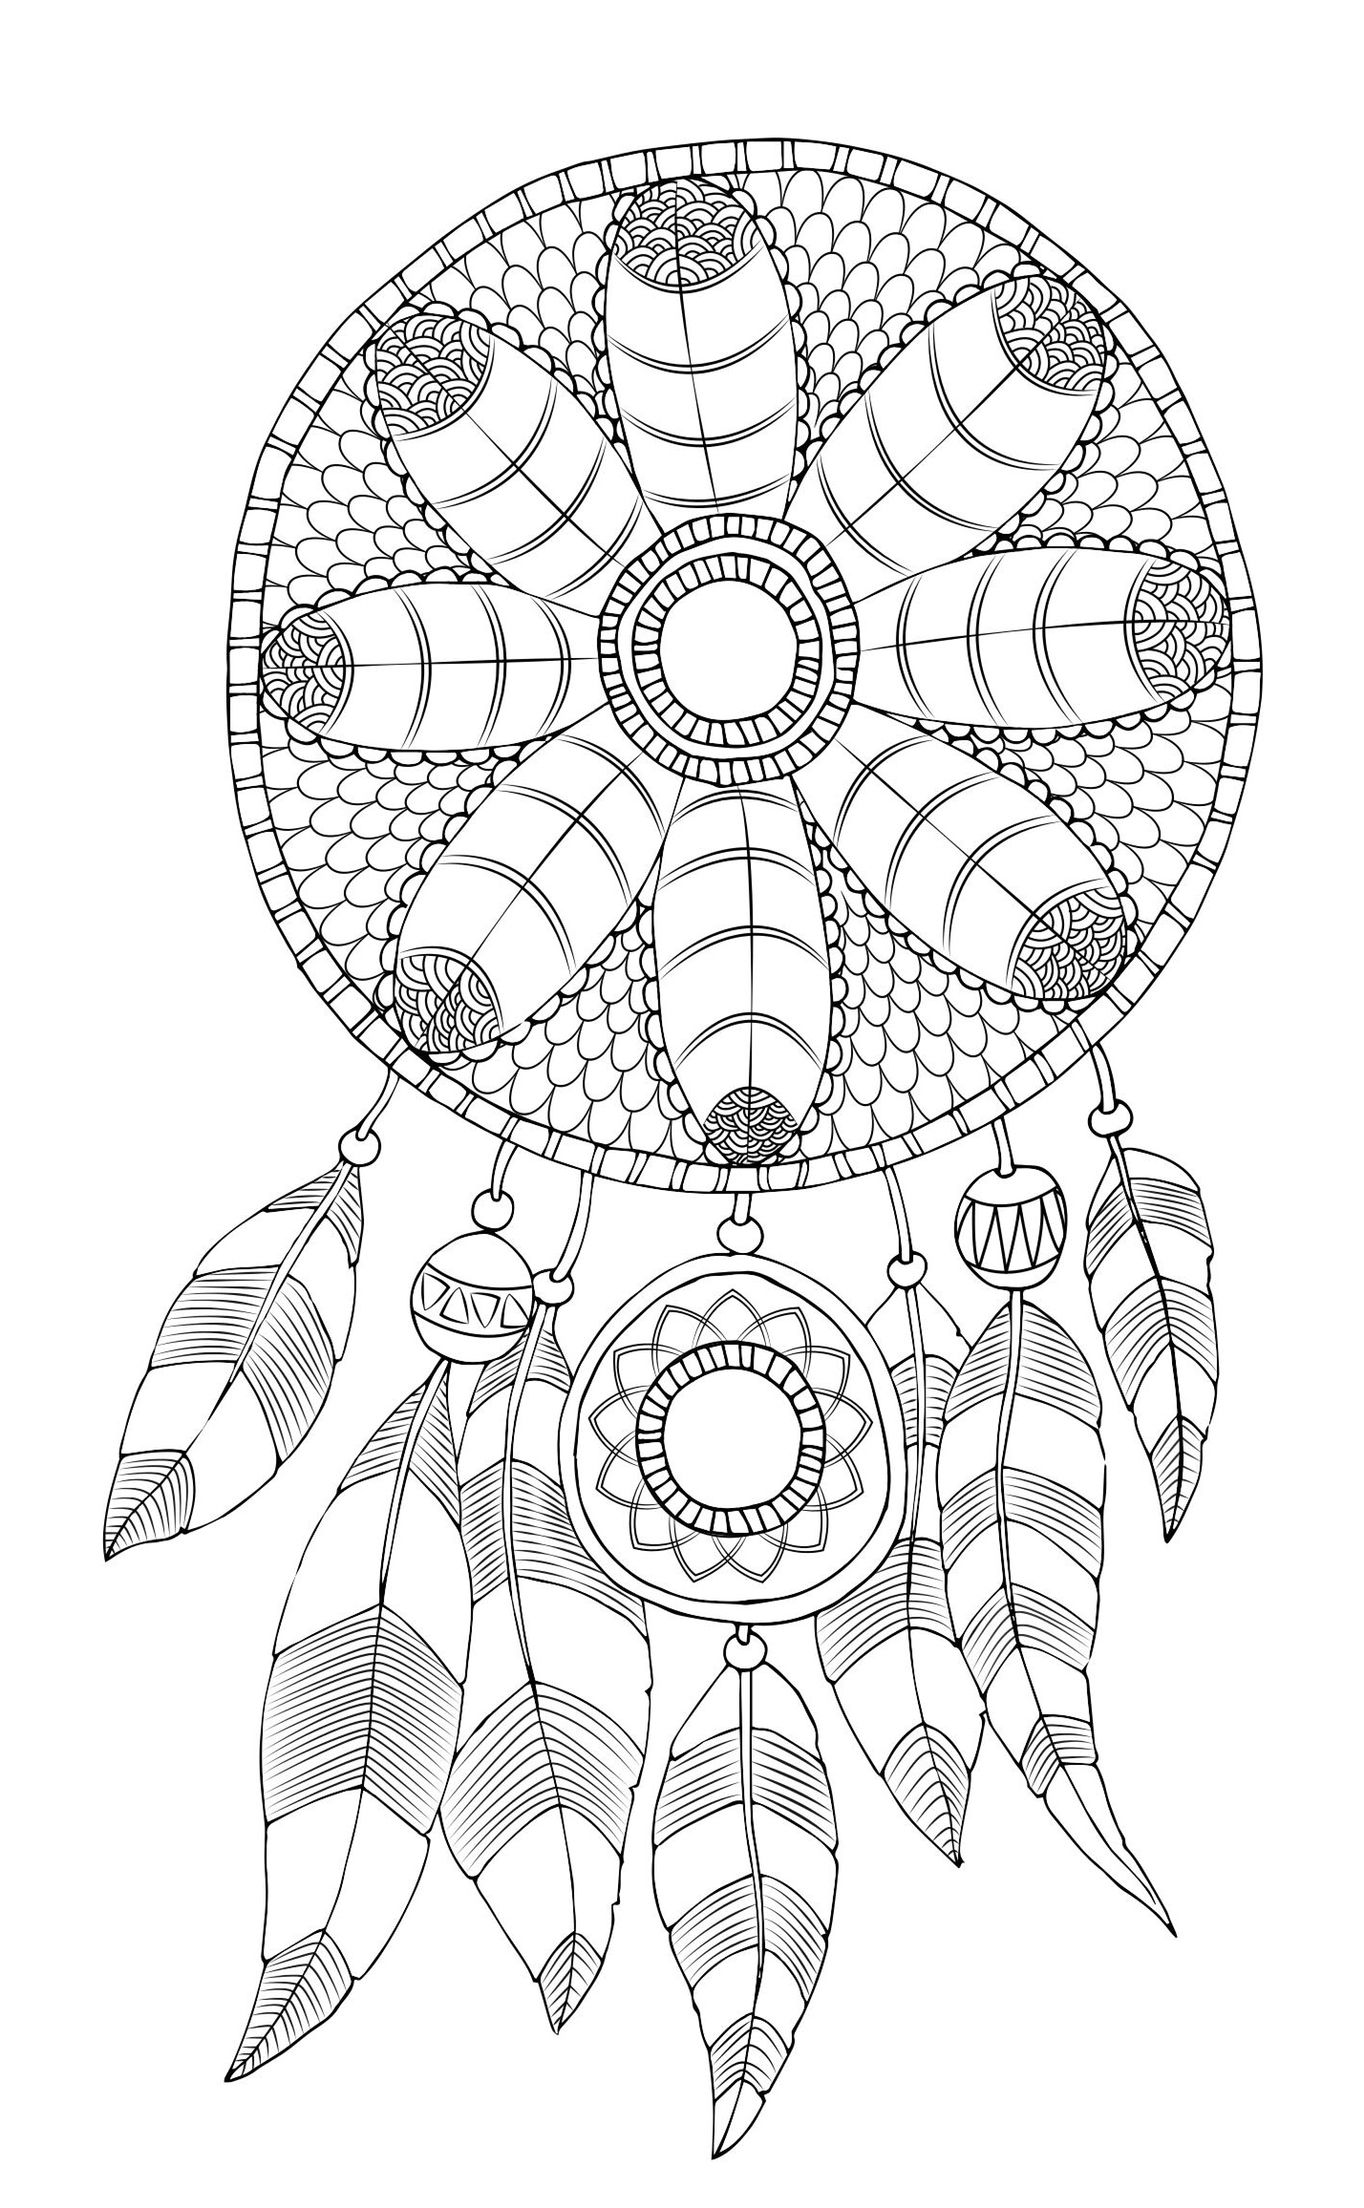 Pin On Dreamcatcher Coloring Pages For Adults